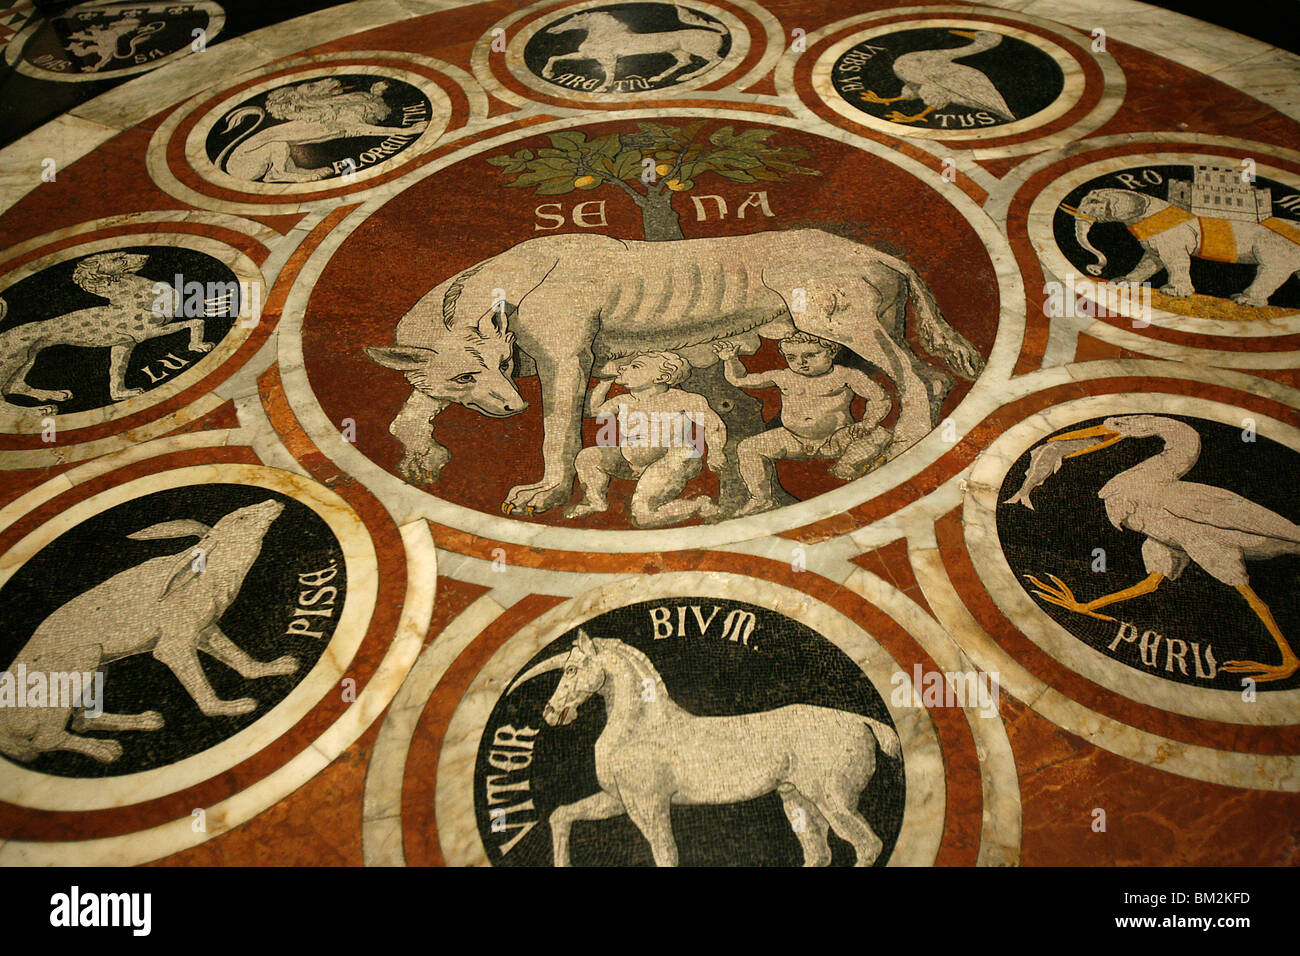 Romulus and Remus in marble work in the Duomo di Sienna, Siena, Tuscany, Italy - Stock Image